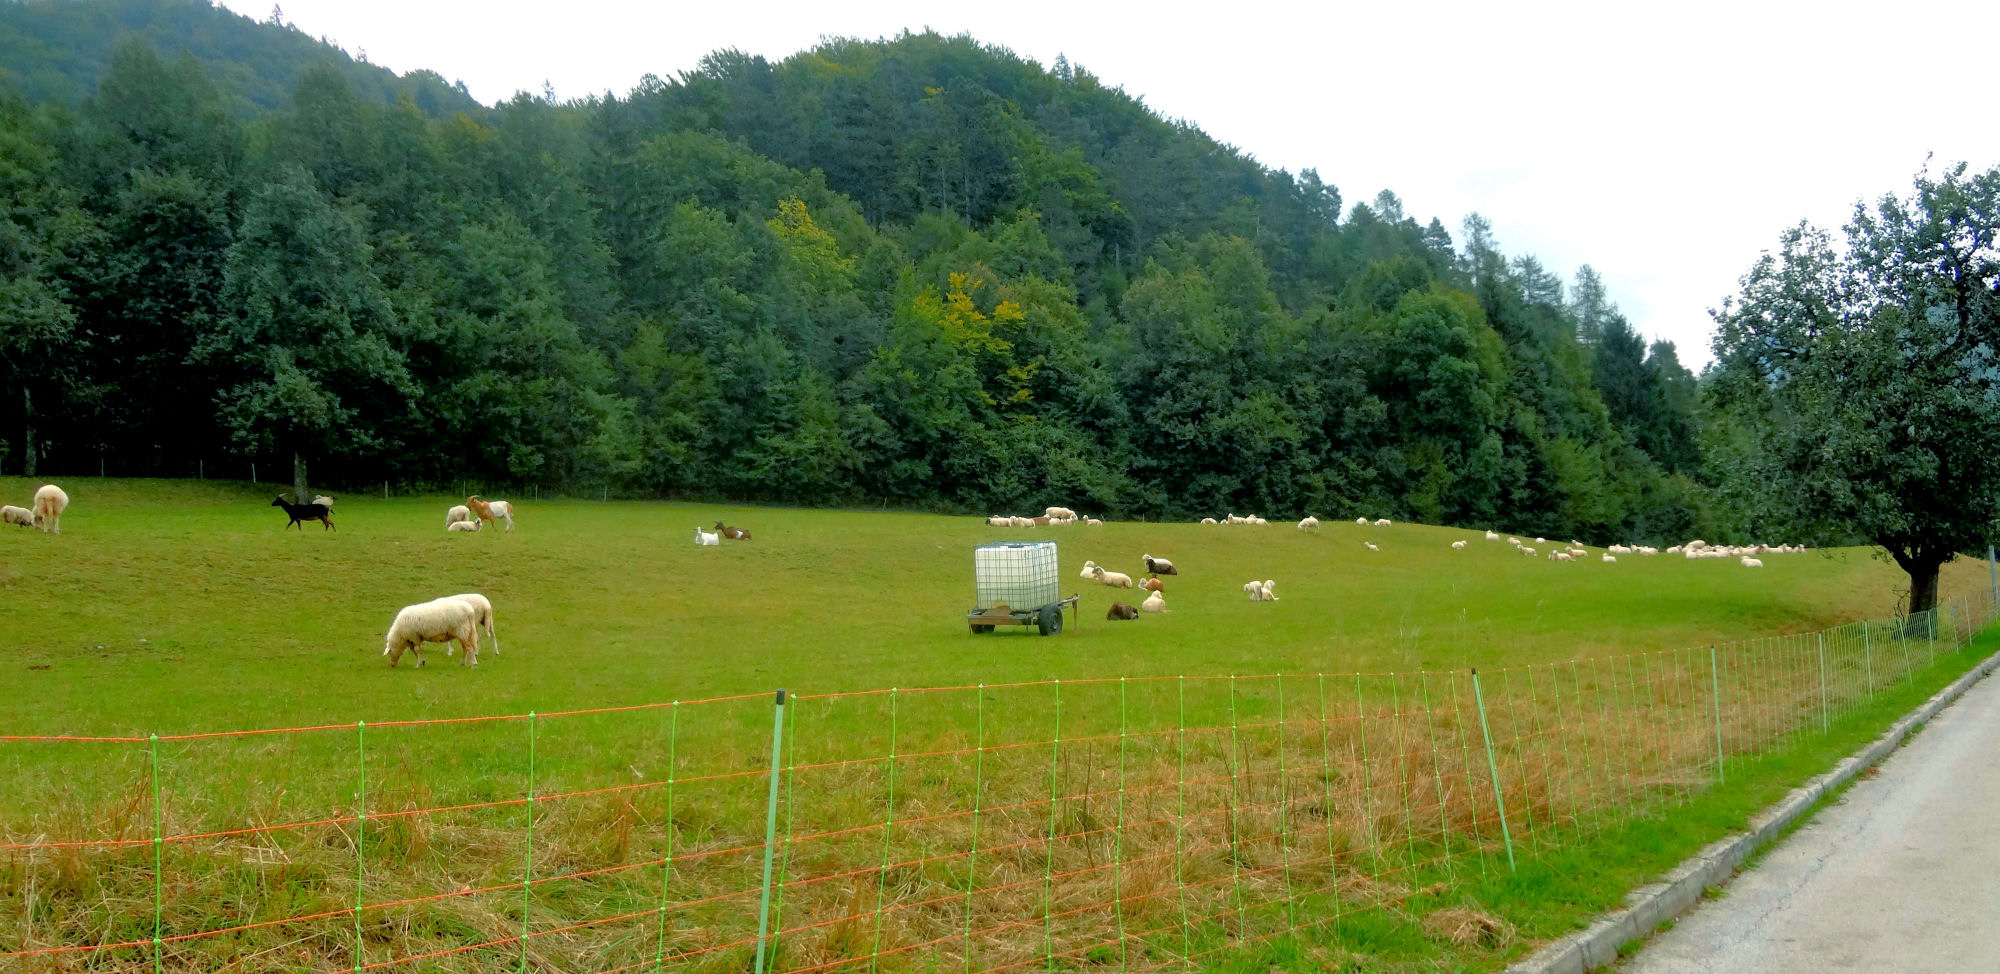 sheep-grazing-in-a-pasture